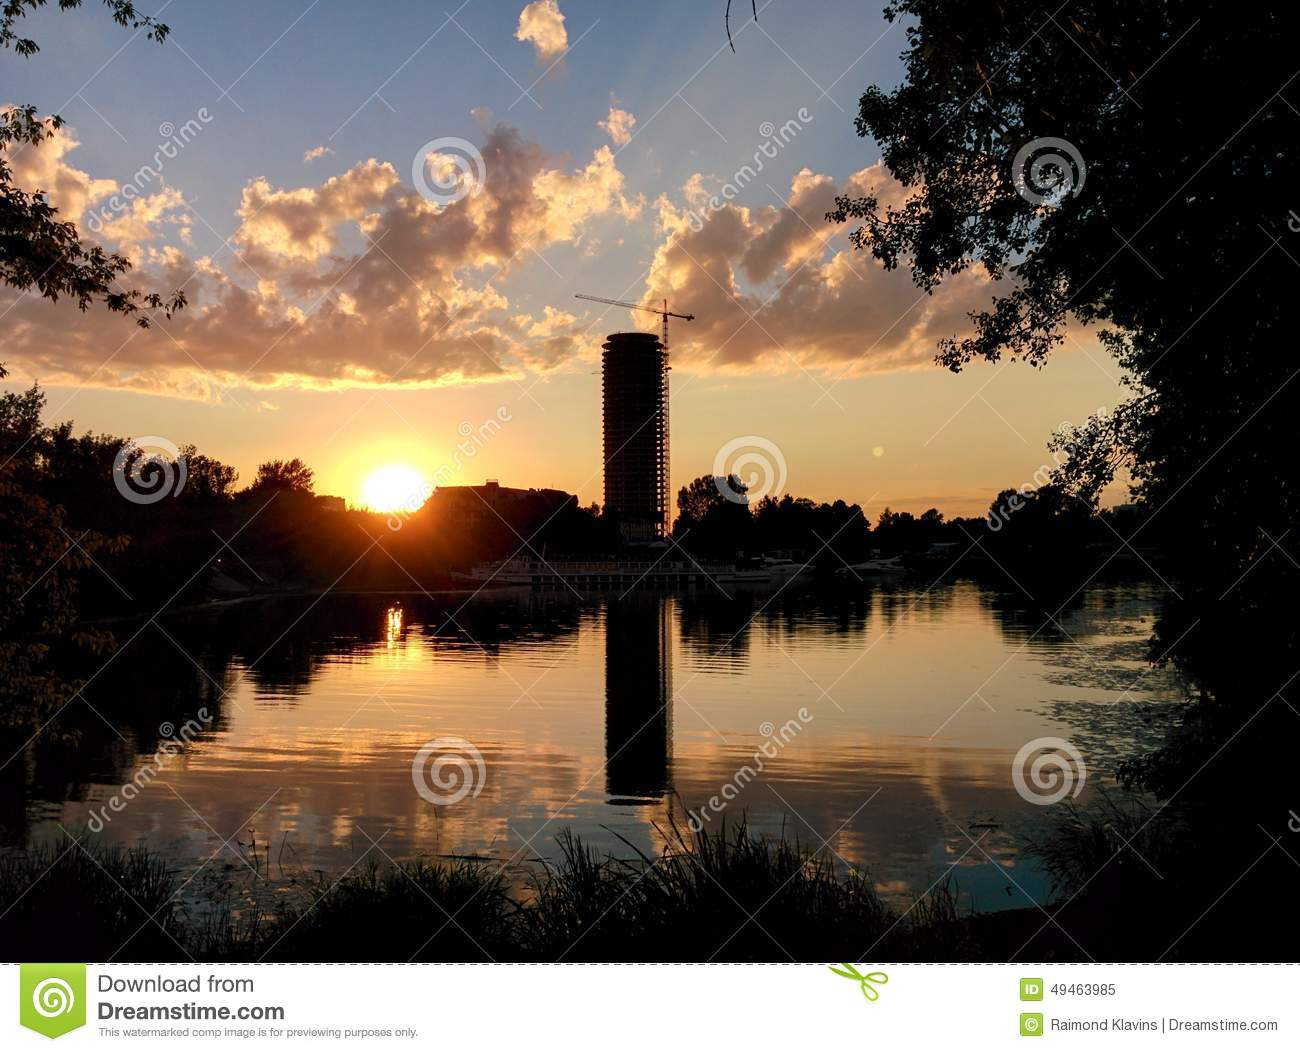 Sunset and silhouette of town with reflection in water